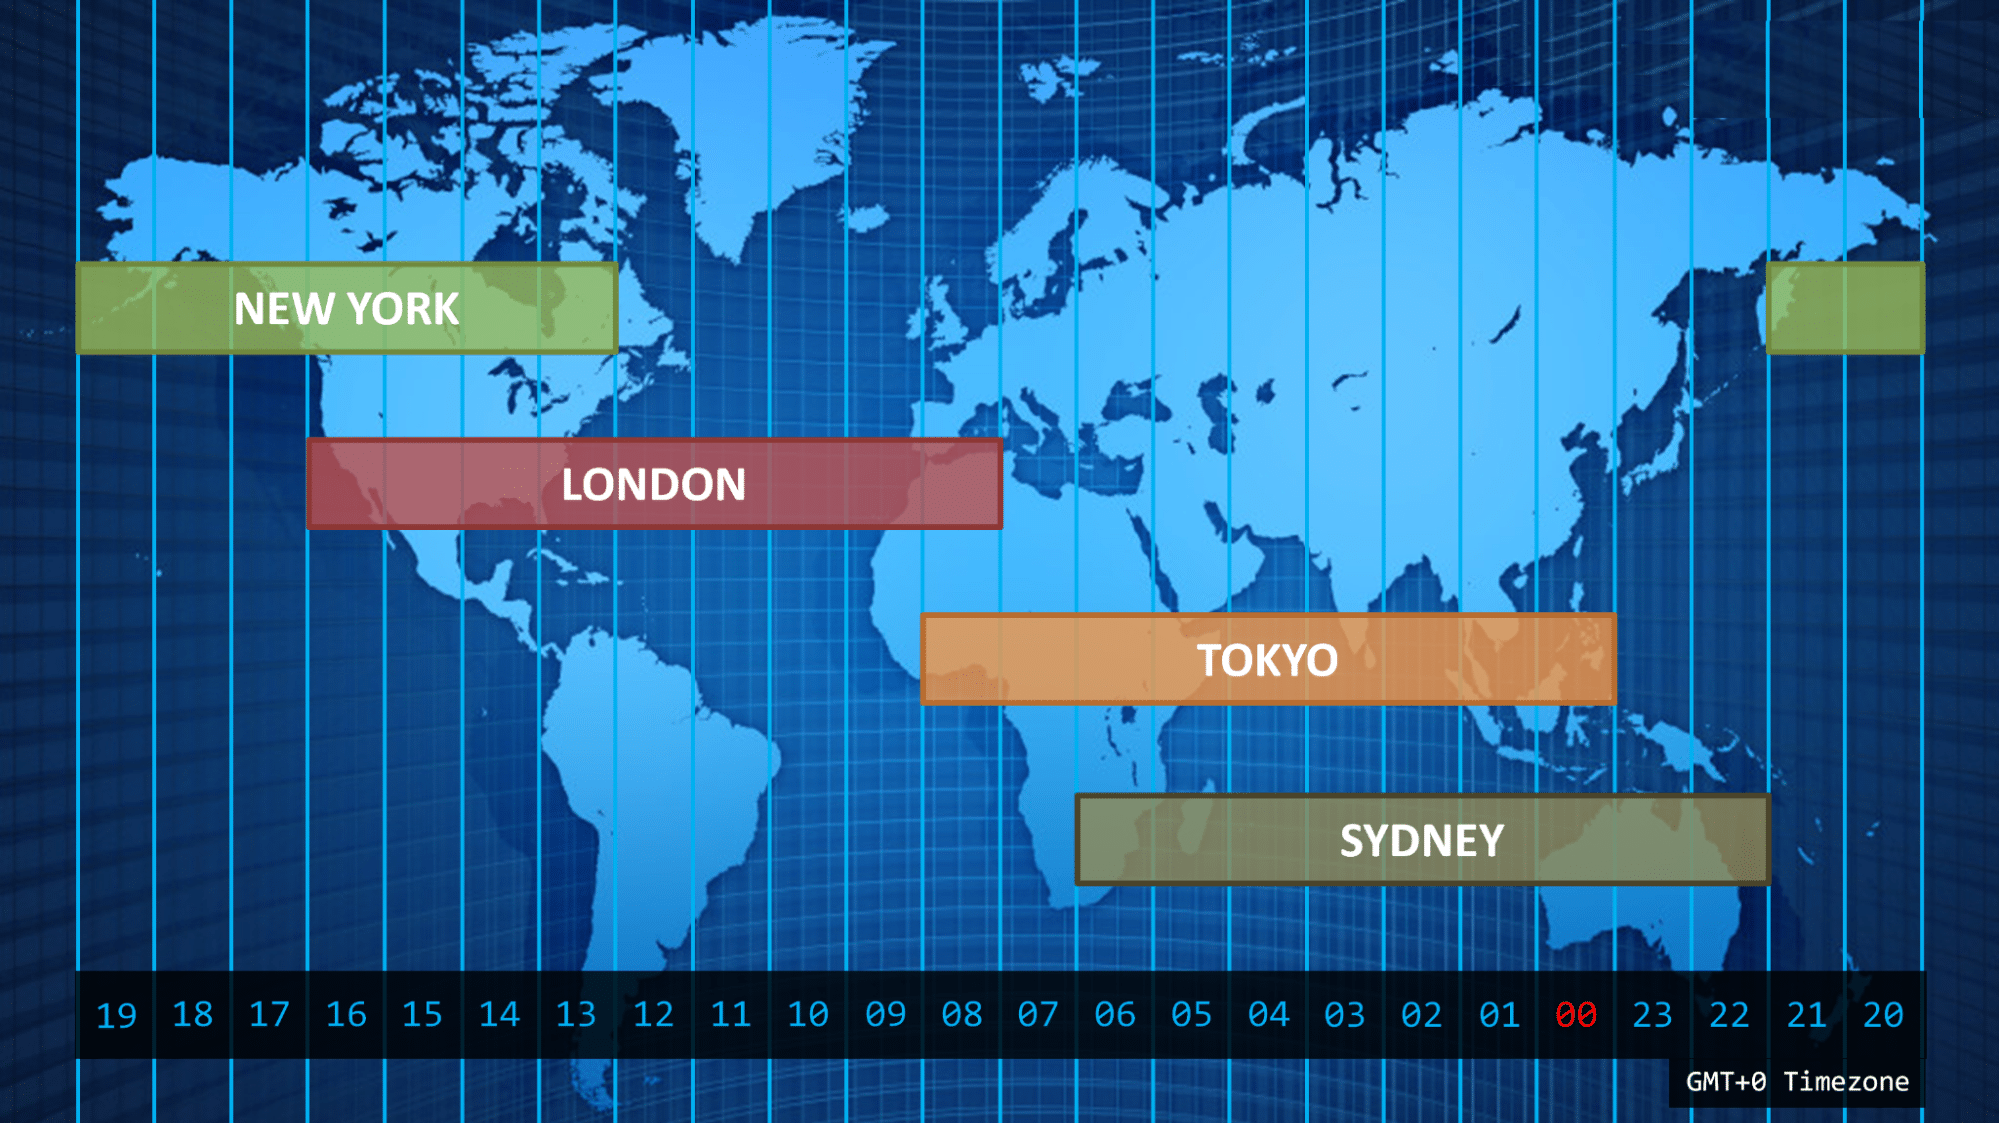 The trading session working hours varies depending on the country